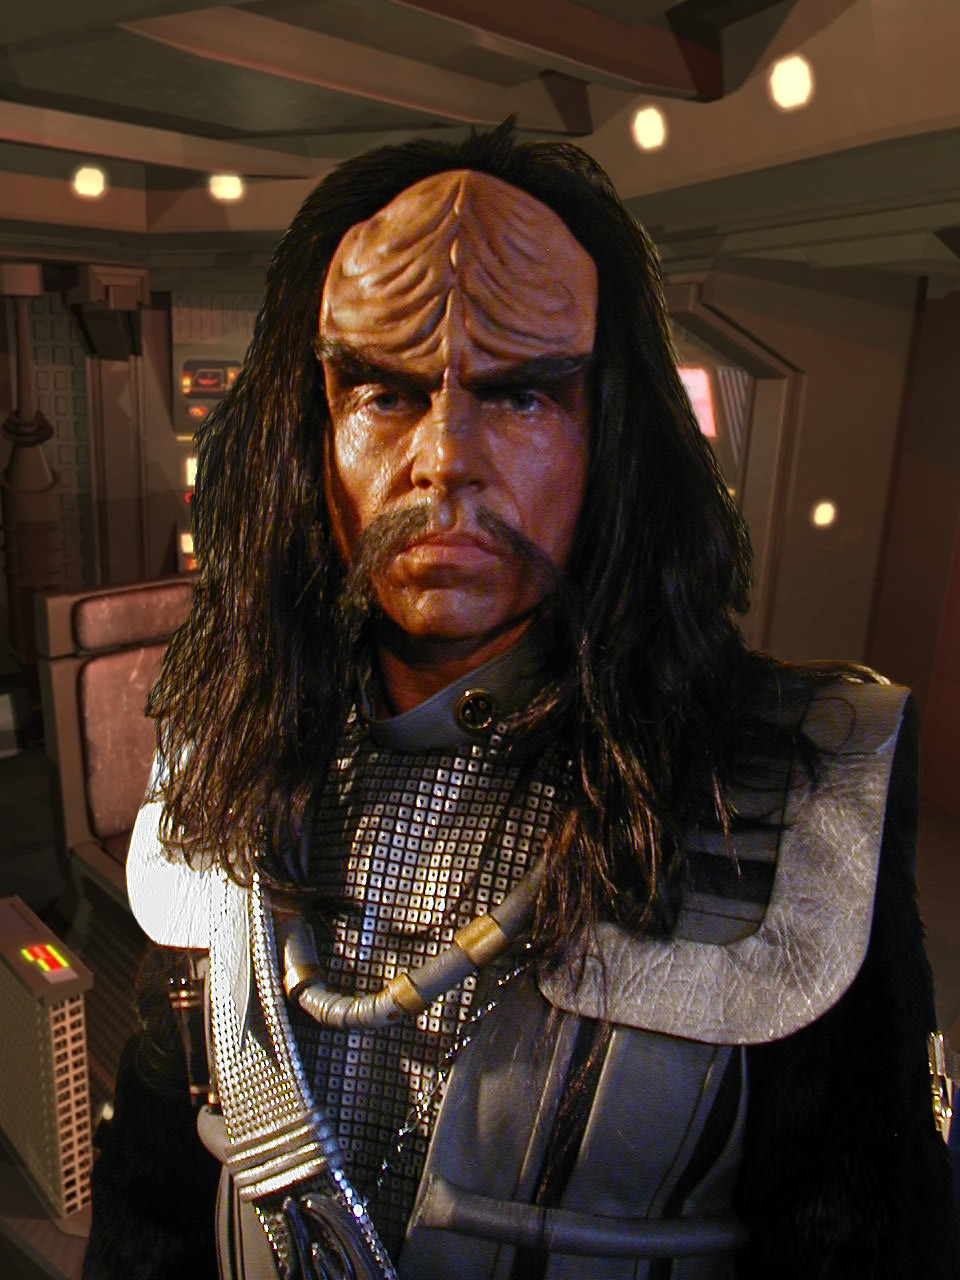 John Carrigan as Klingon, Star Trek:  Of Gods and Men - Makeup by Tim Vittetoe, ImpaQt FX